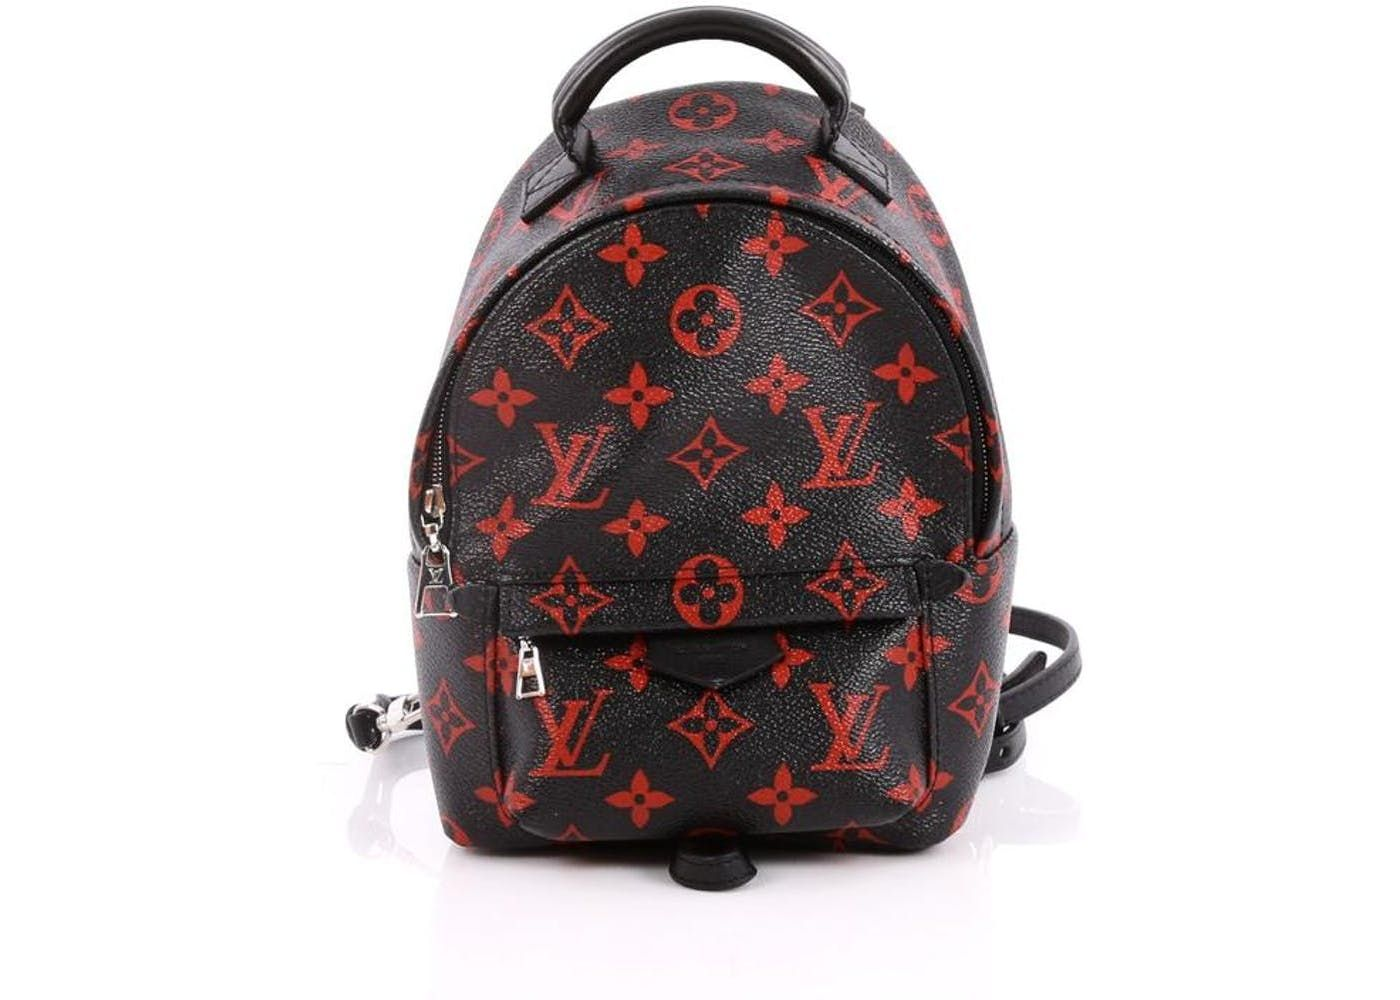 c2d09bb81c5 GUCCI Auth 406370 KVW3X 9769 Backpack GG Caleido Supreme Canvas Black Mint   0031  GUCCI  Backpack